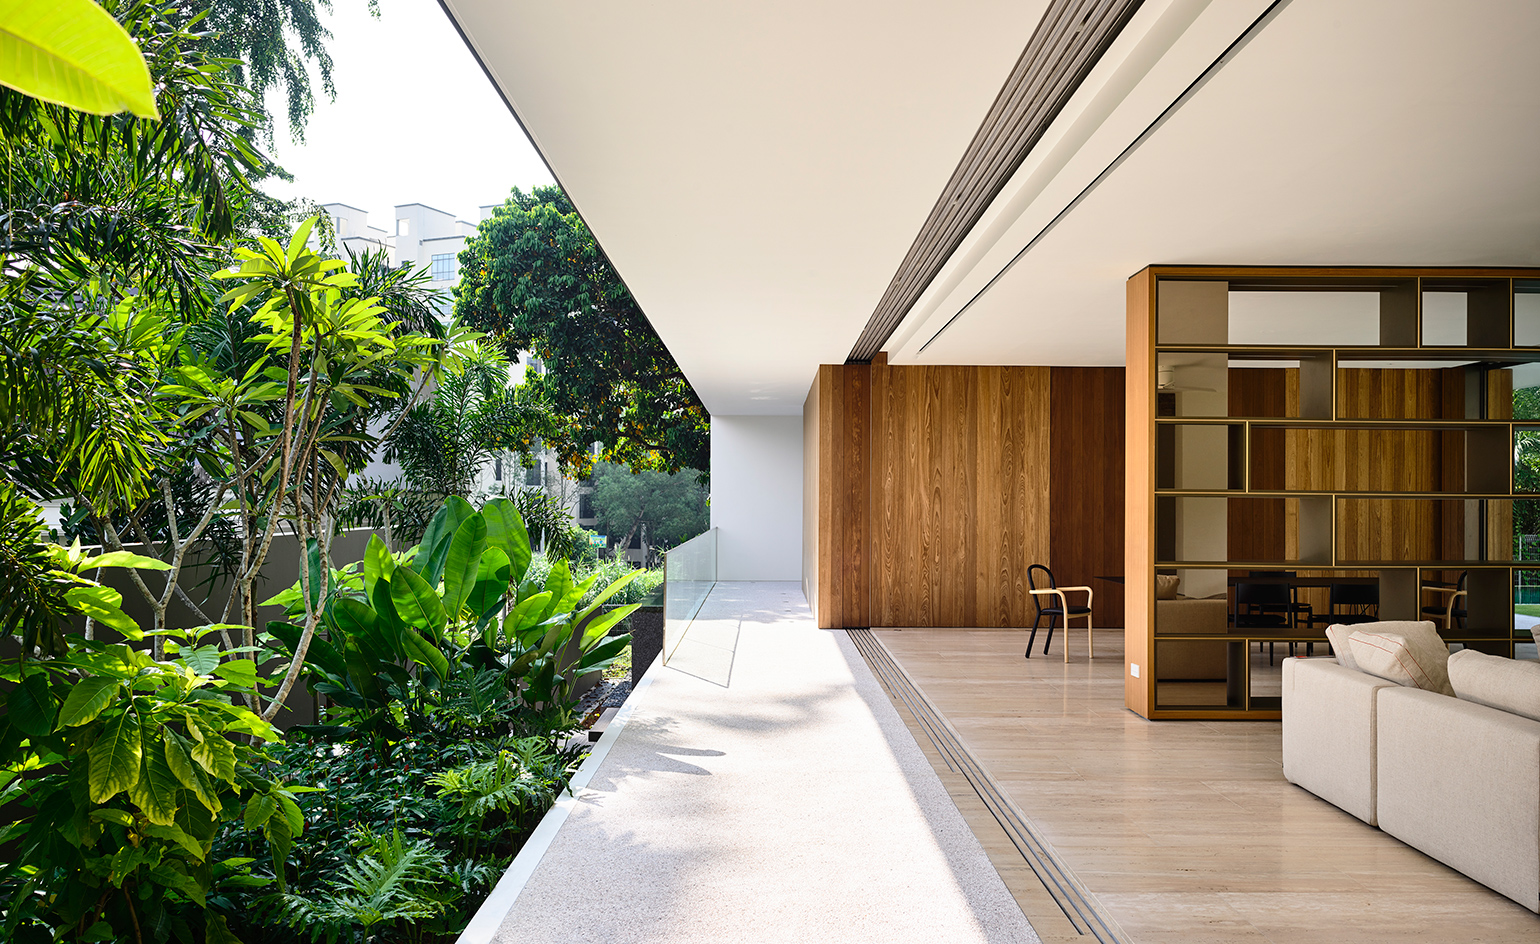 The architects' open plan approach helps link the interiors to the leafy gardens and surrounding nature